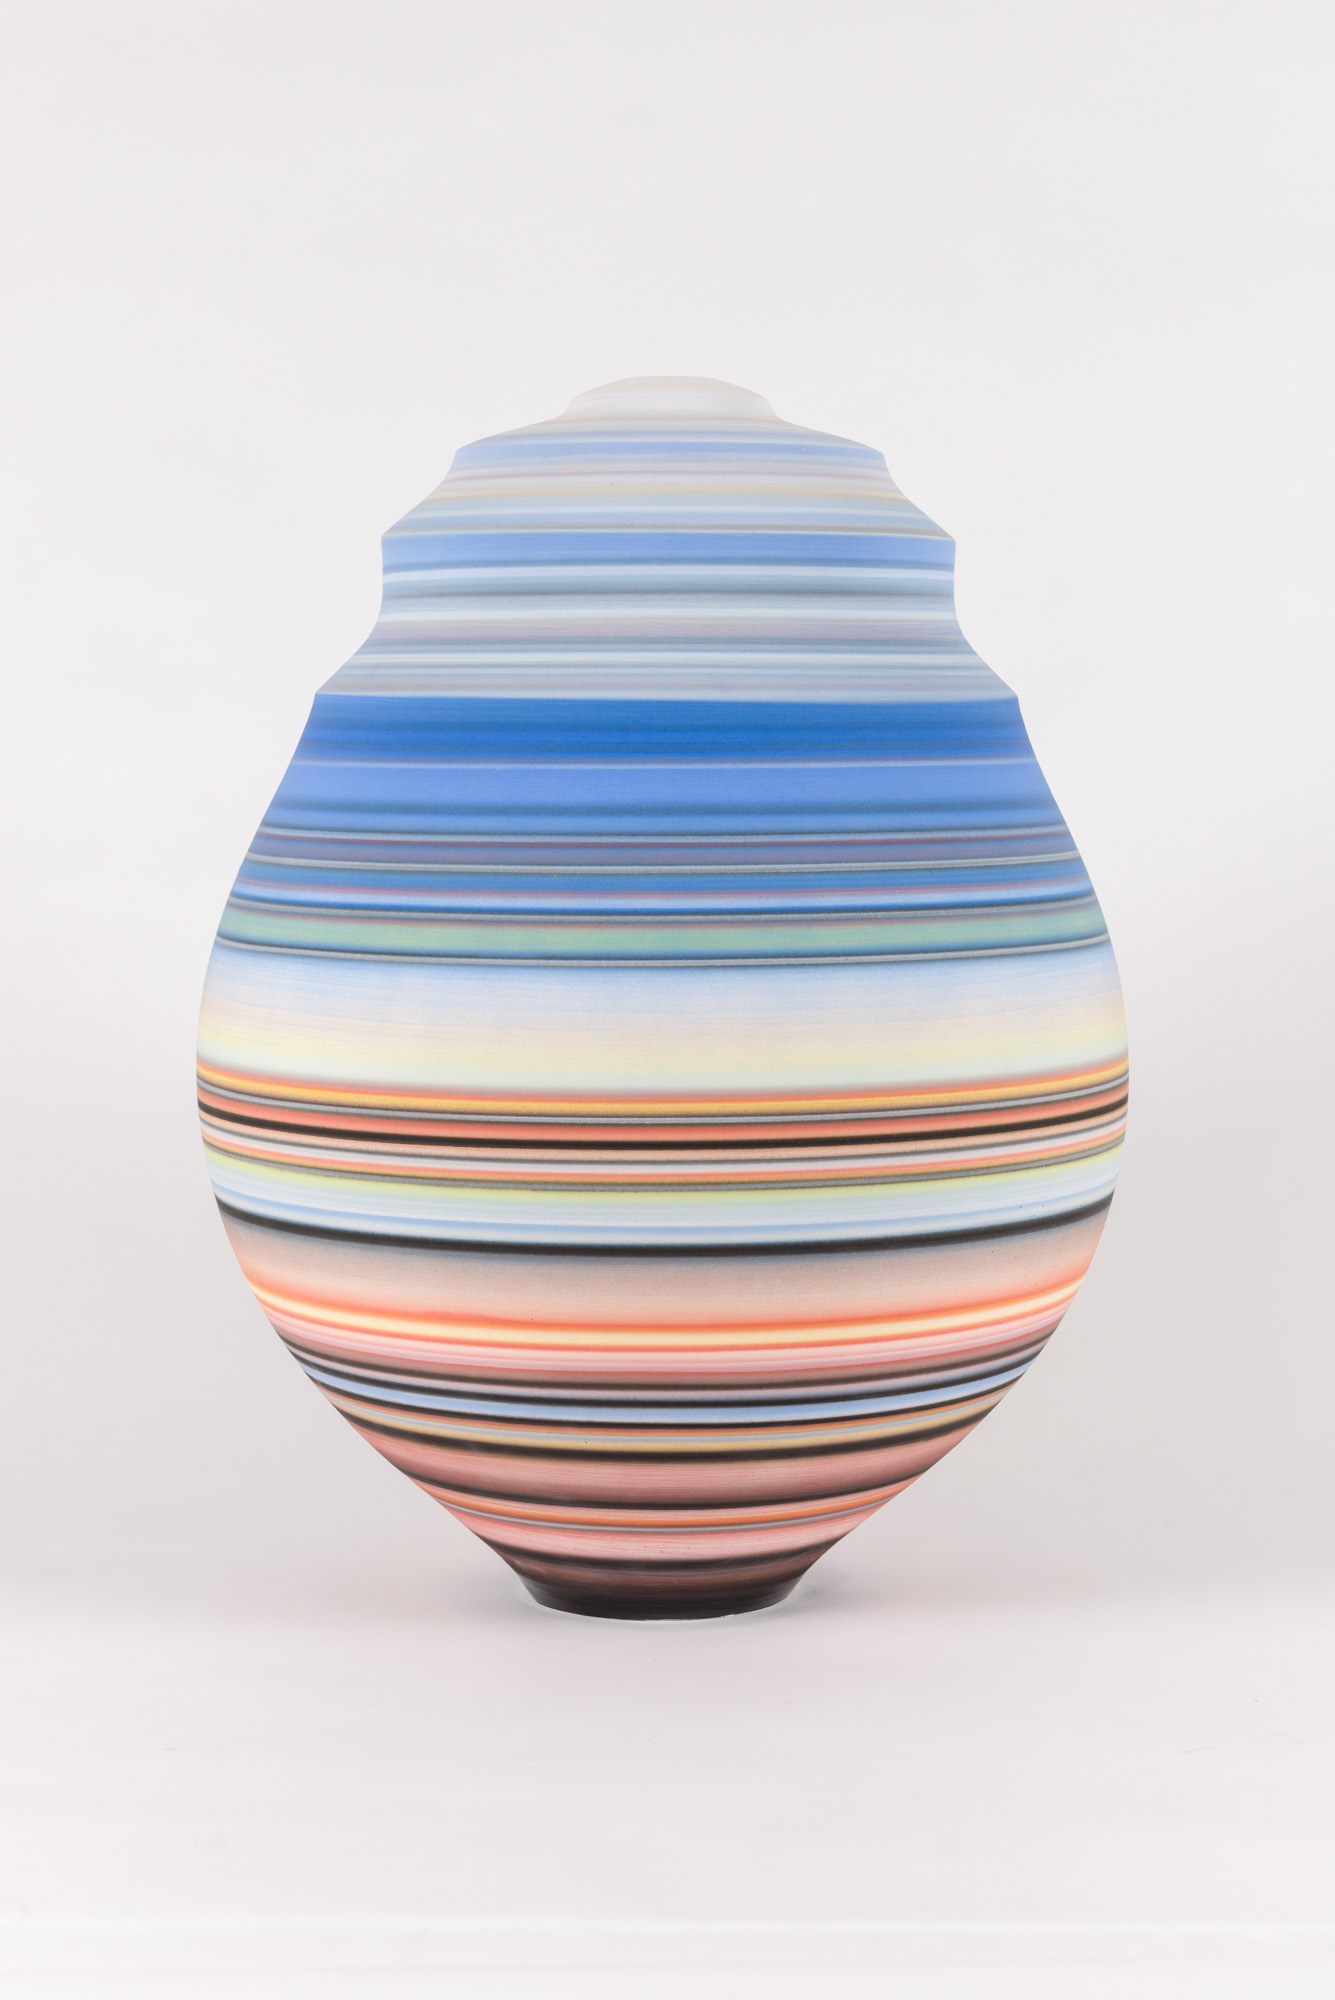 Accretion Series (blue, orange)  , 2019  Glazed Earthenware  22 x 16 x 16 in.